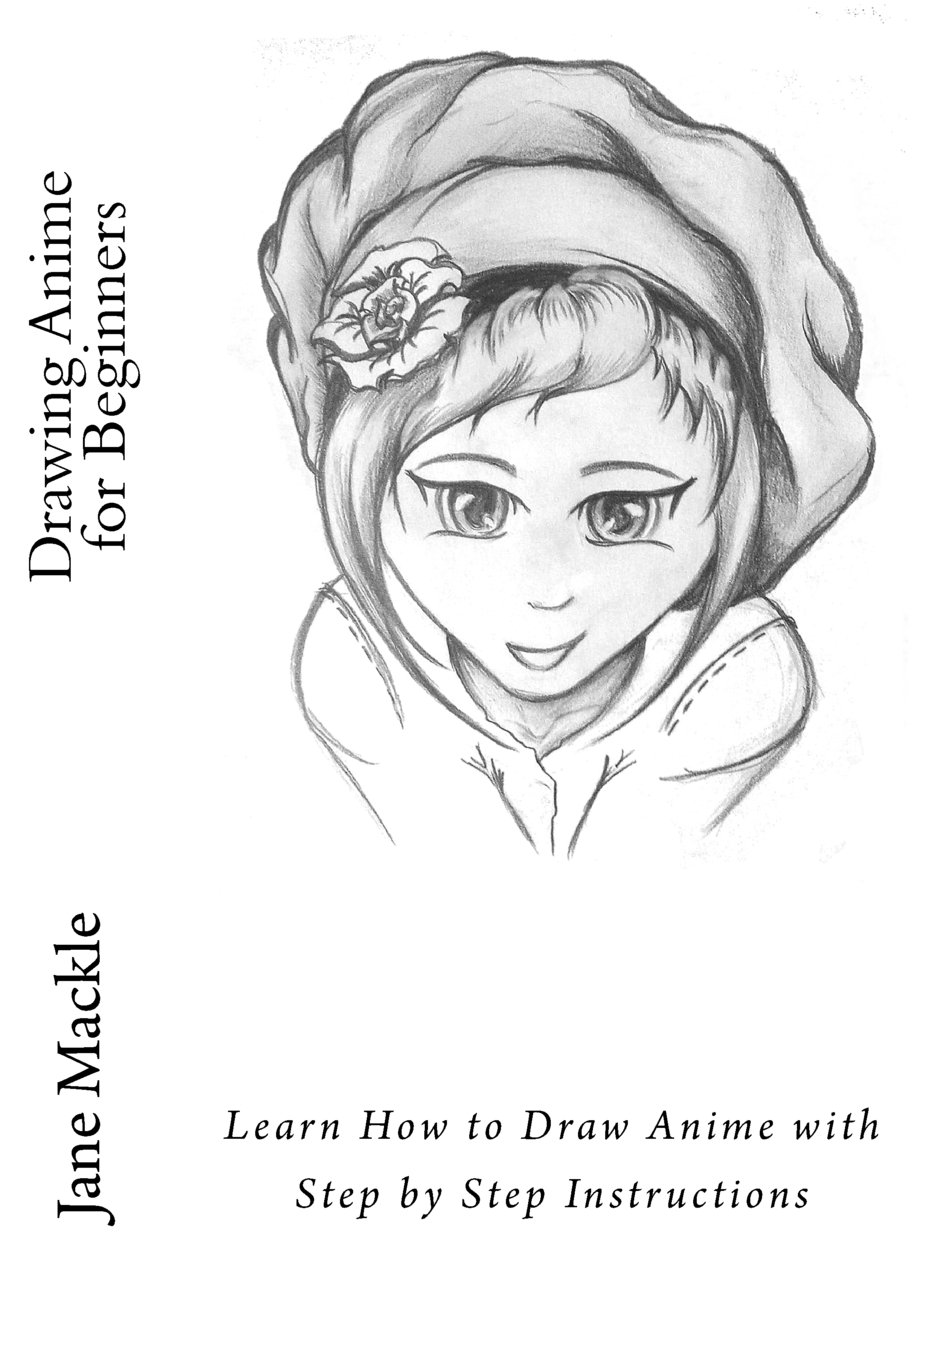 Drawing anime for beginners learn how to draw anime with step by step instructions anime drawing course volume 1 paperback november 25 2015